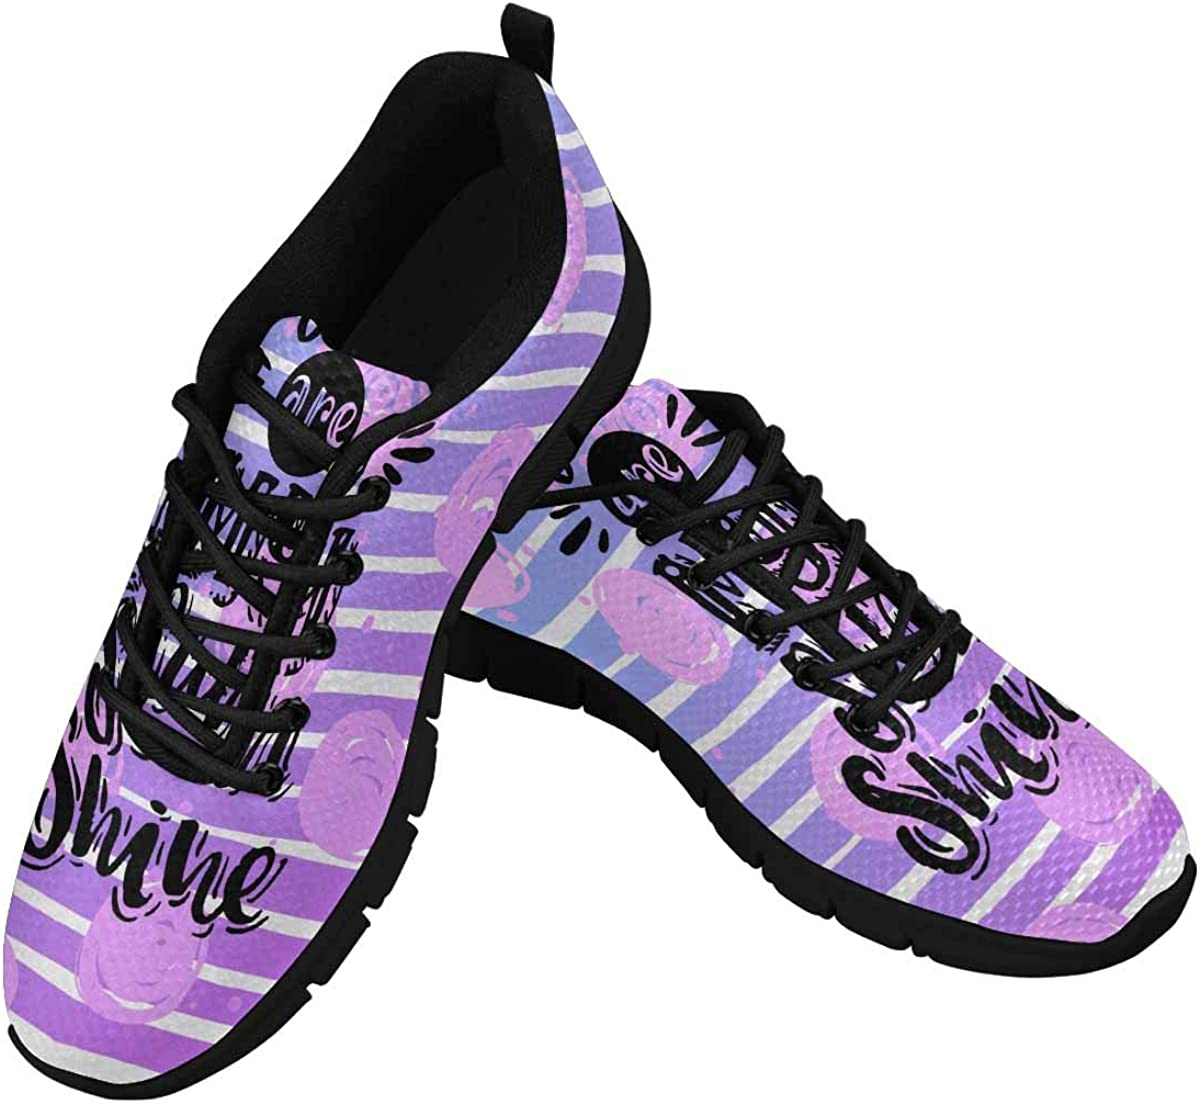 INTERESTPRINT You are My Sunshine Women's Athletic Walking Running Sneakers Comfortable Lightweight Shoes